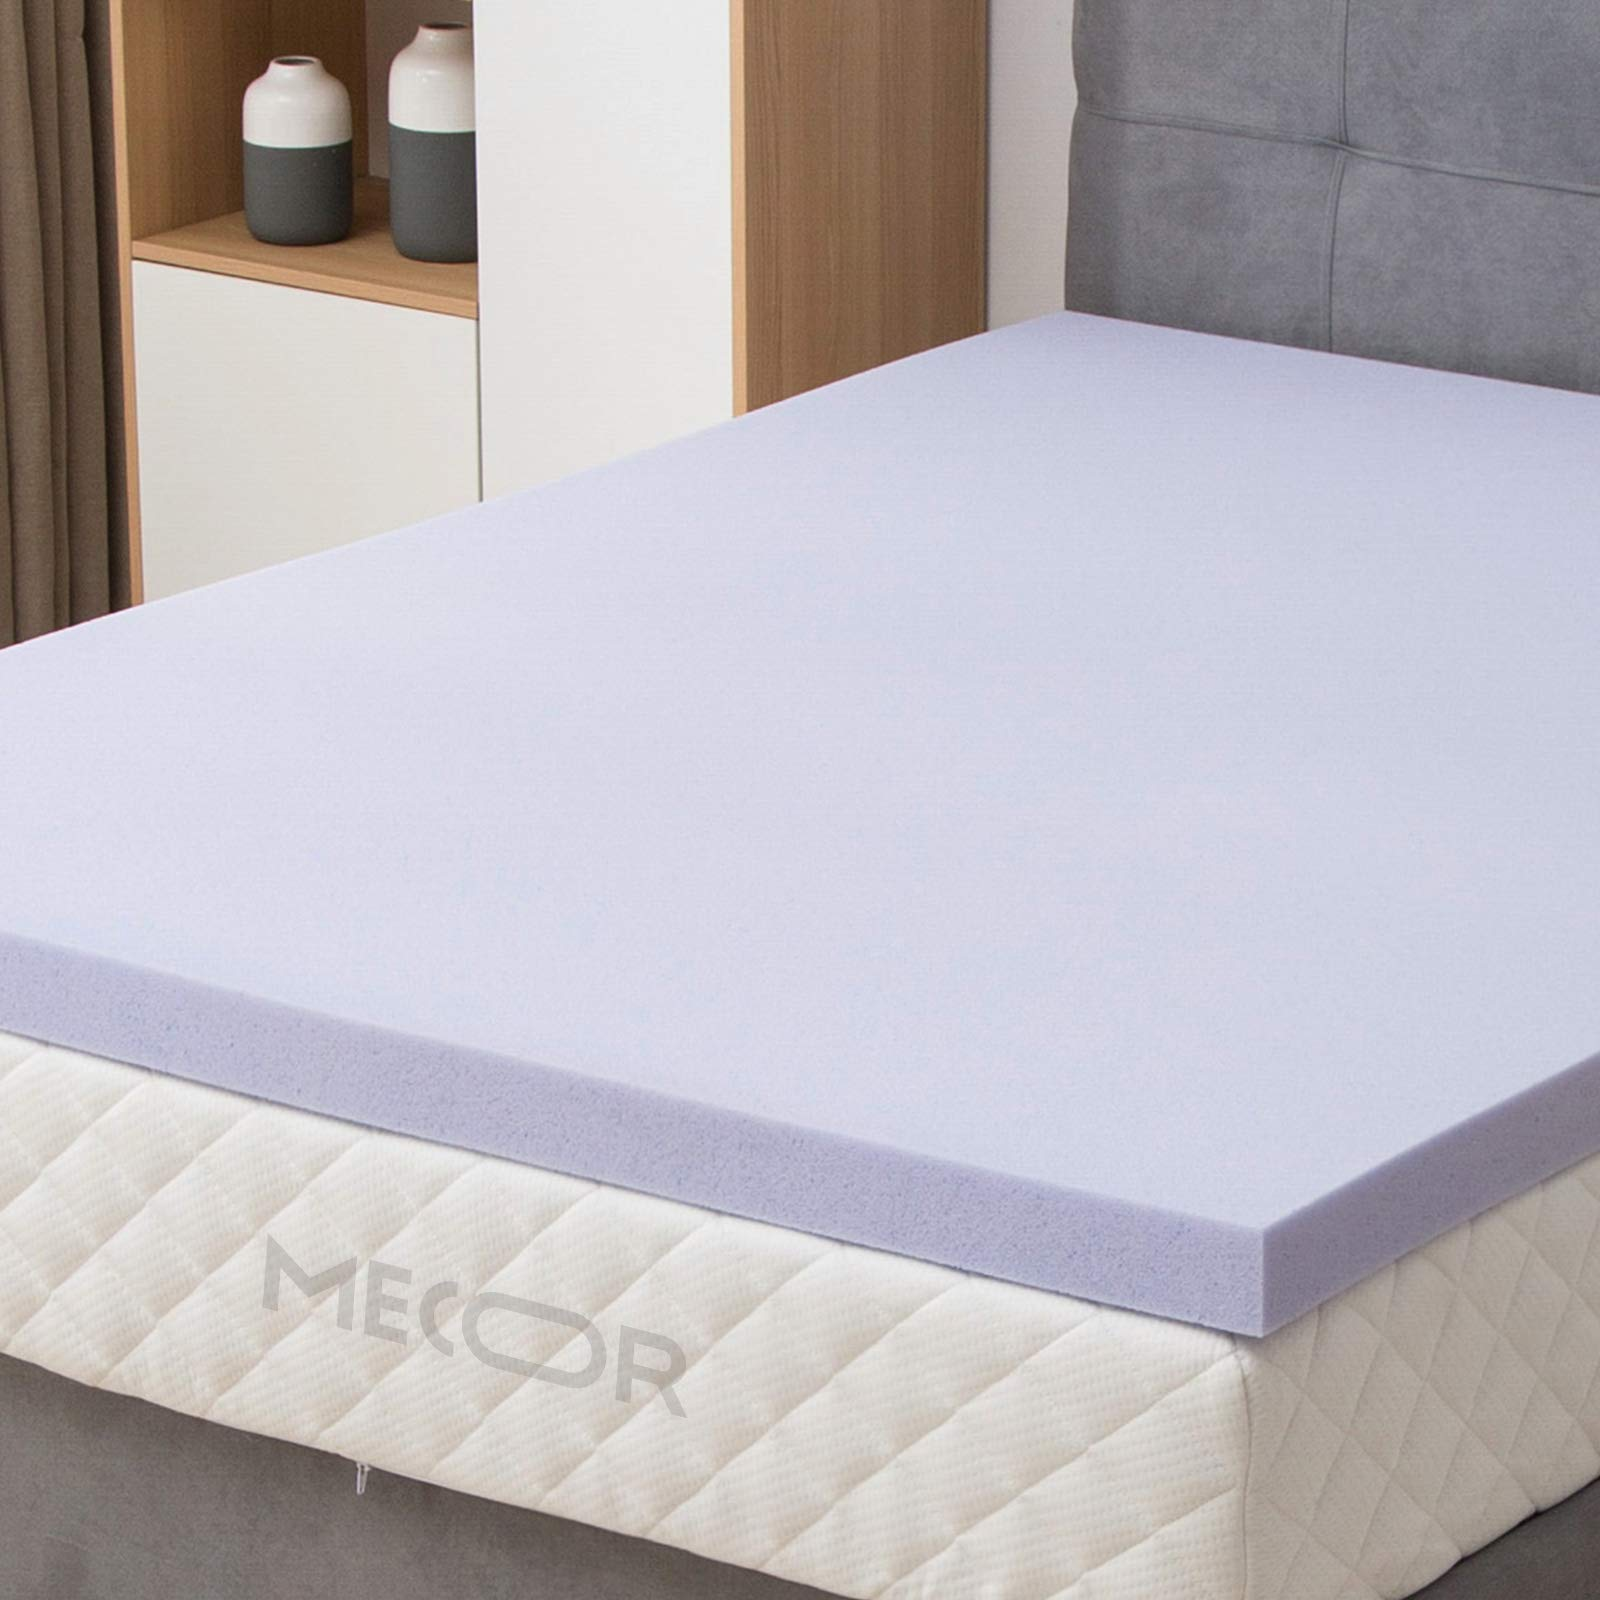 mecor 4'' 4 inch Queen Size Gel Infused Memory Foam Mattress Topper-Flat Design Bed Mattress Topper W/CertiPUR-US Certified Foam for Side, Back, Stomach Sleepers-Purple by mecor